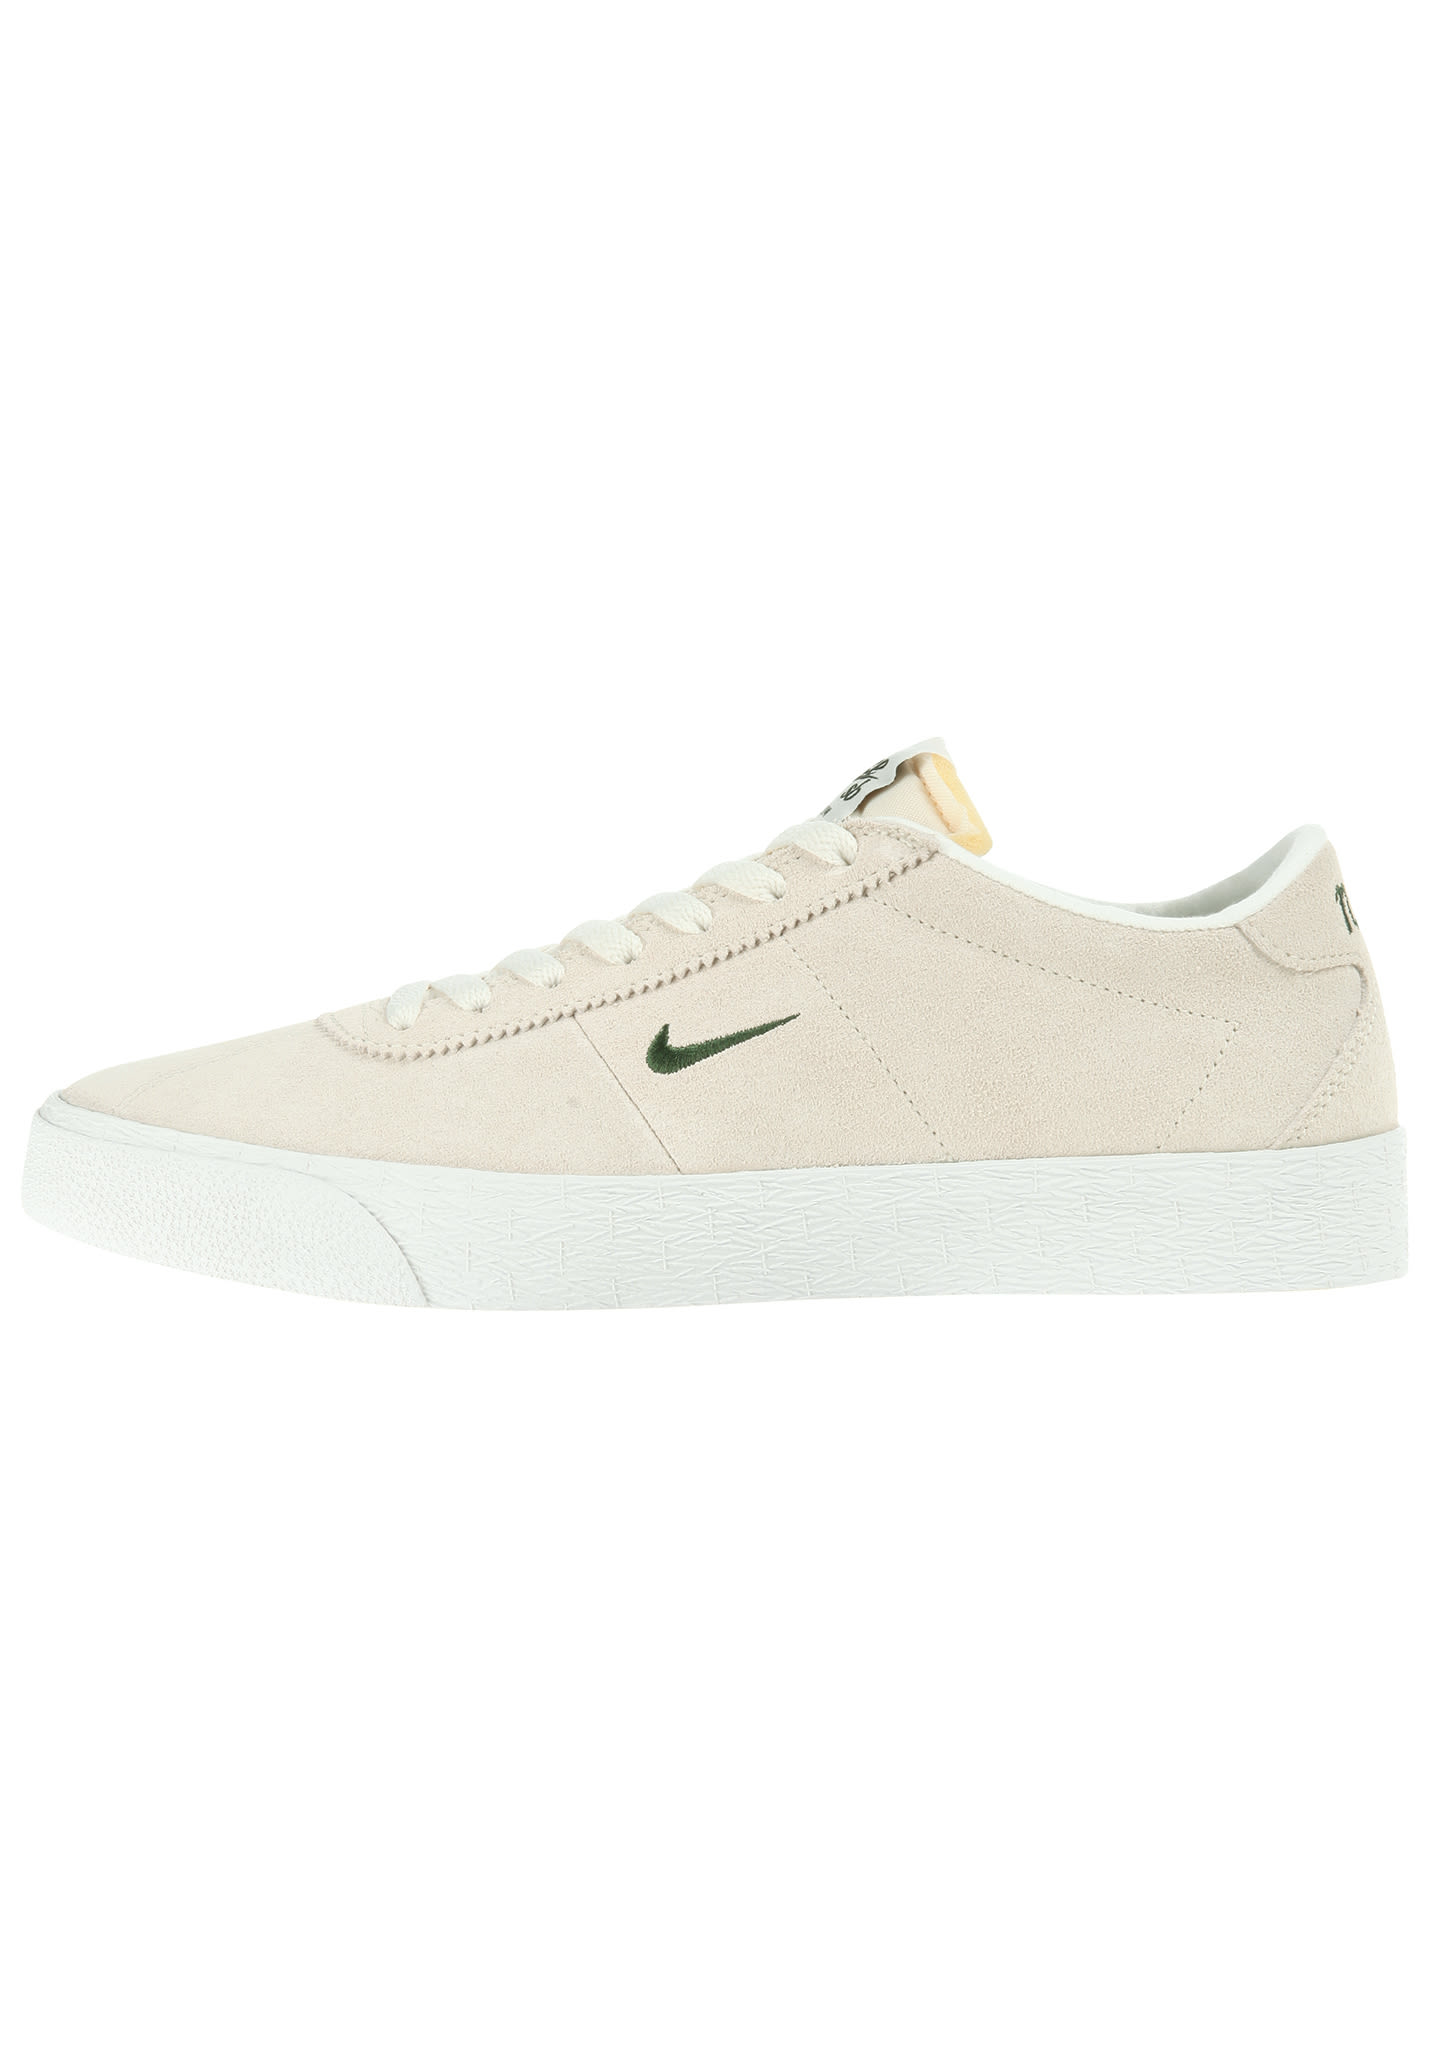 ffc7d678dd5c0 NIKE SB Zoom Bruin - Sneakers for Men - Beige - Planet Sports